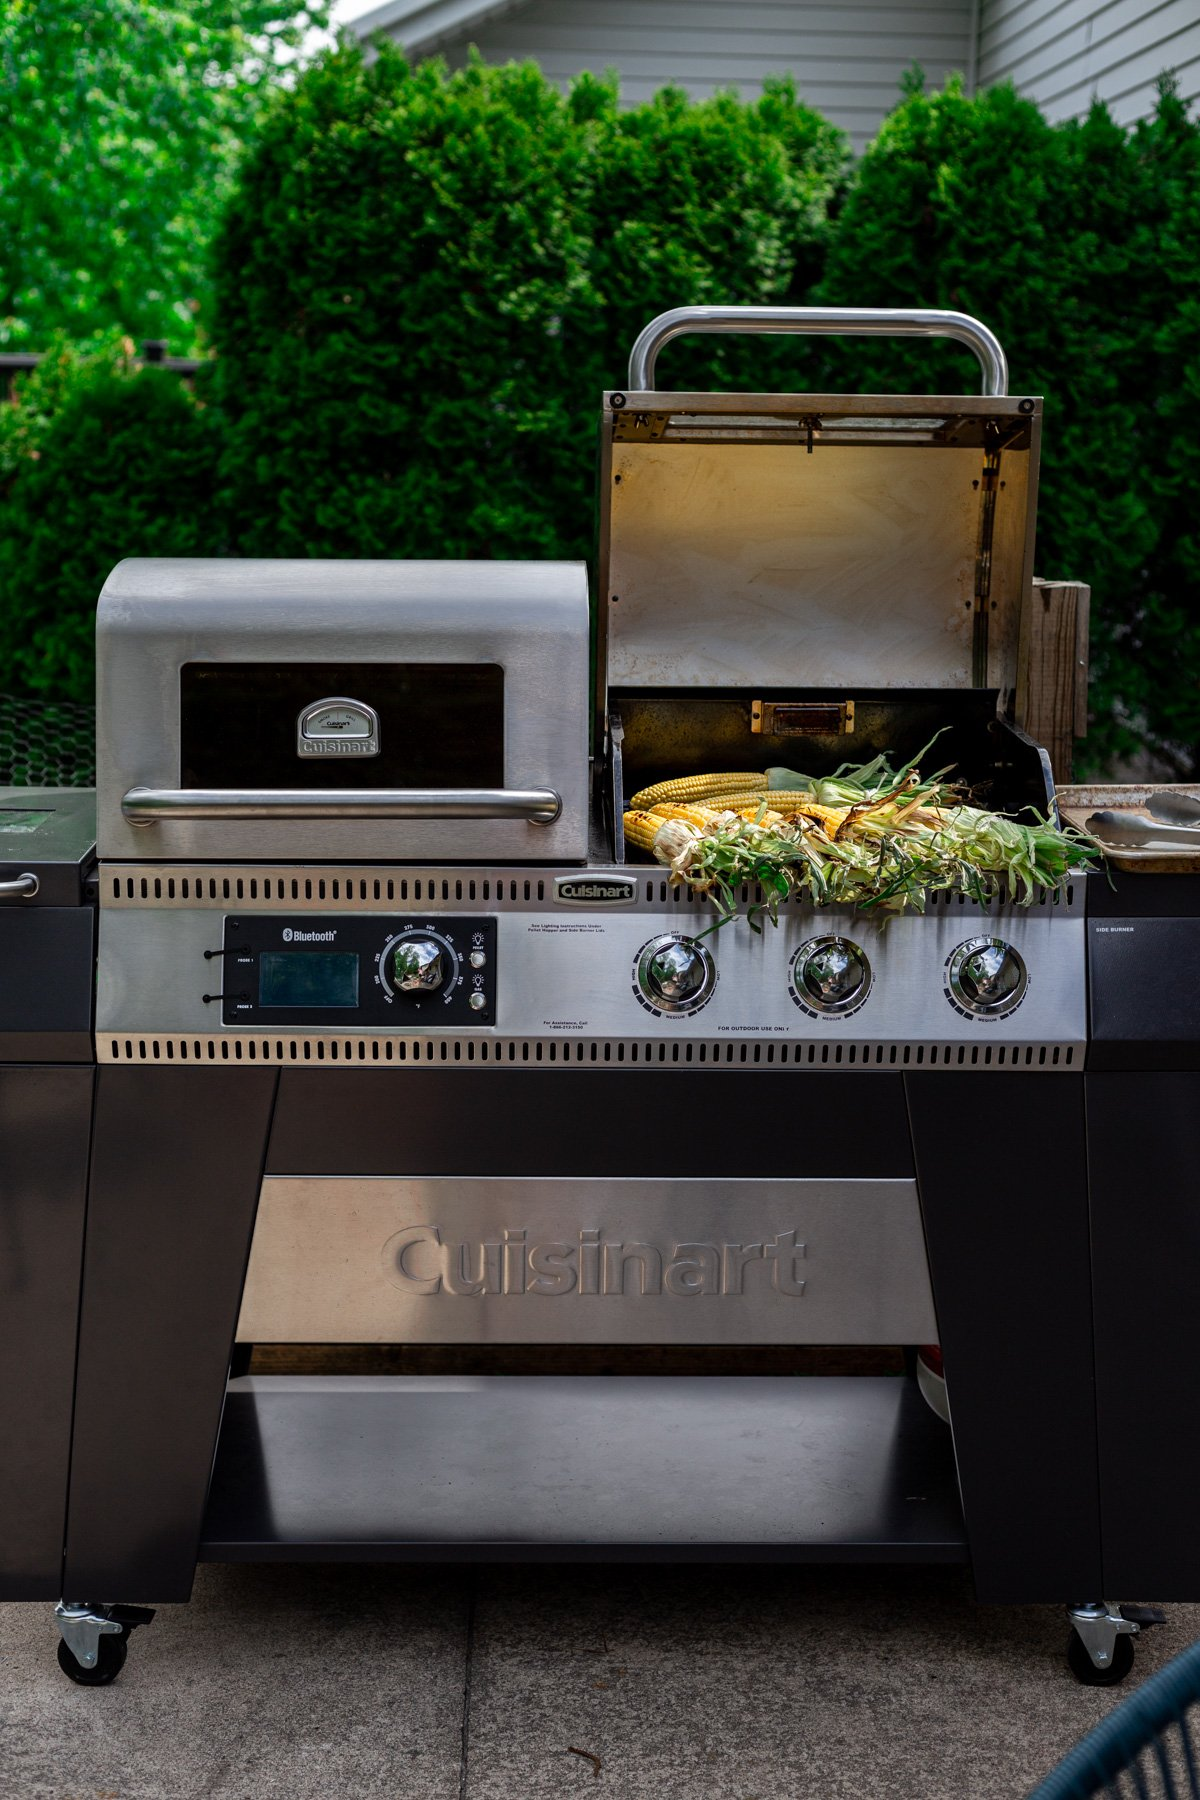 cuisinart twin oaks pellet & gas grill with fresh corn being grilled